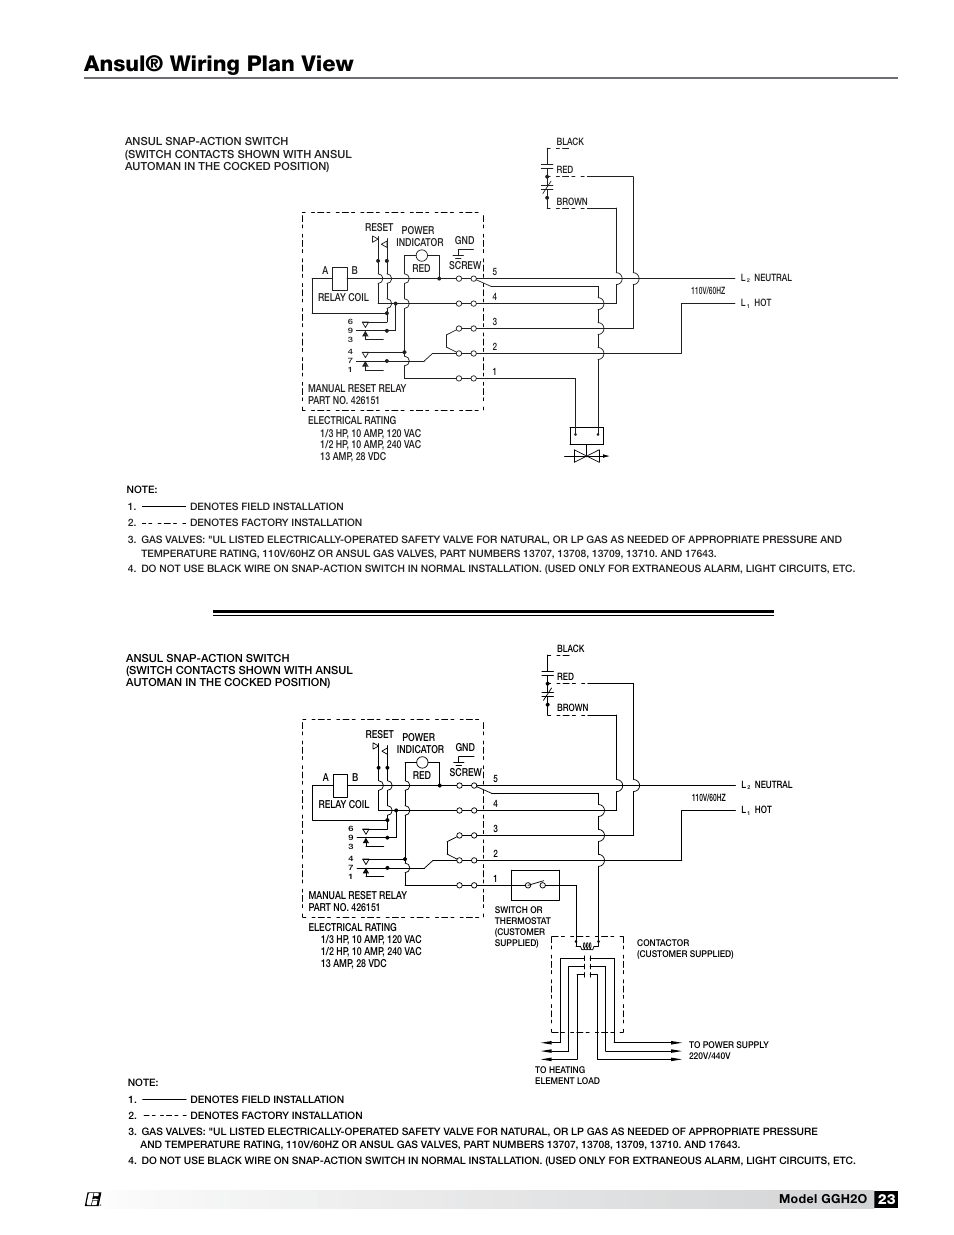 hight resolution of ansul wiring plan view greenheck fan grease grabber h2o auto cleaning hood ggh20 user manual page 23 28